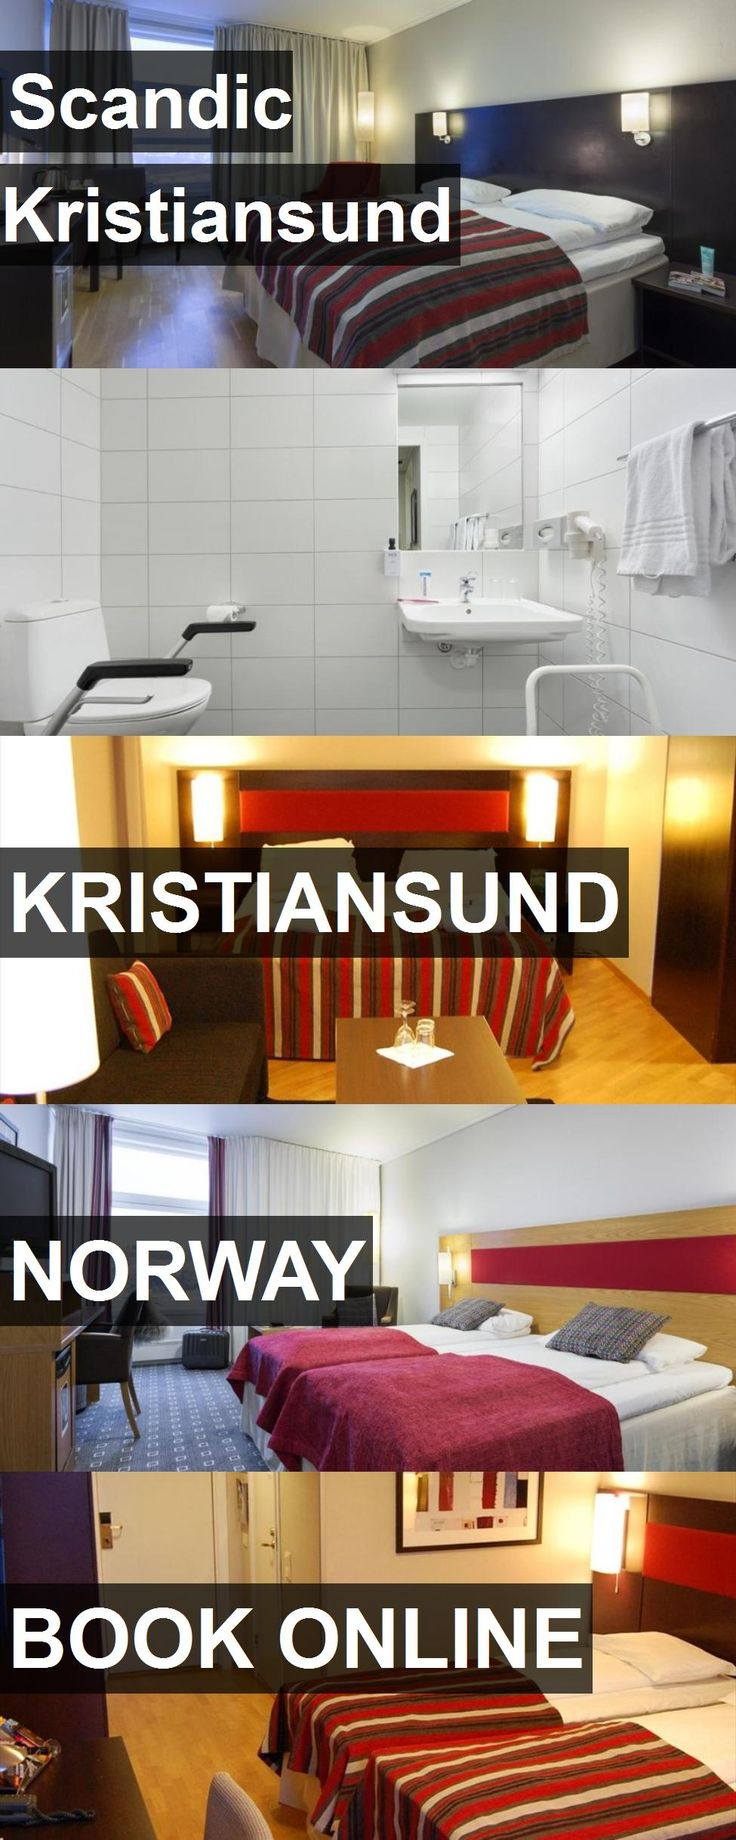 Hotel Scandic Kristiansund in Kristiansund, Norway. For more information, photos, reviews and best prices please follow the link. #Norway #Kristiansund #travel #vacation #hotel